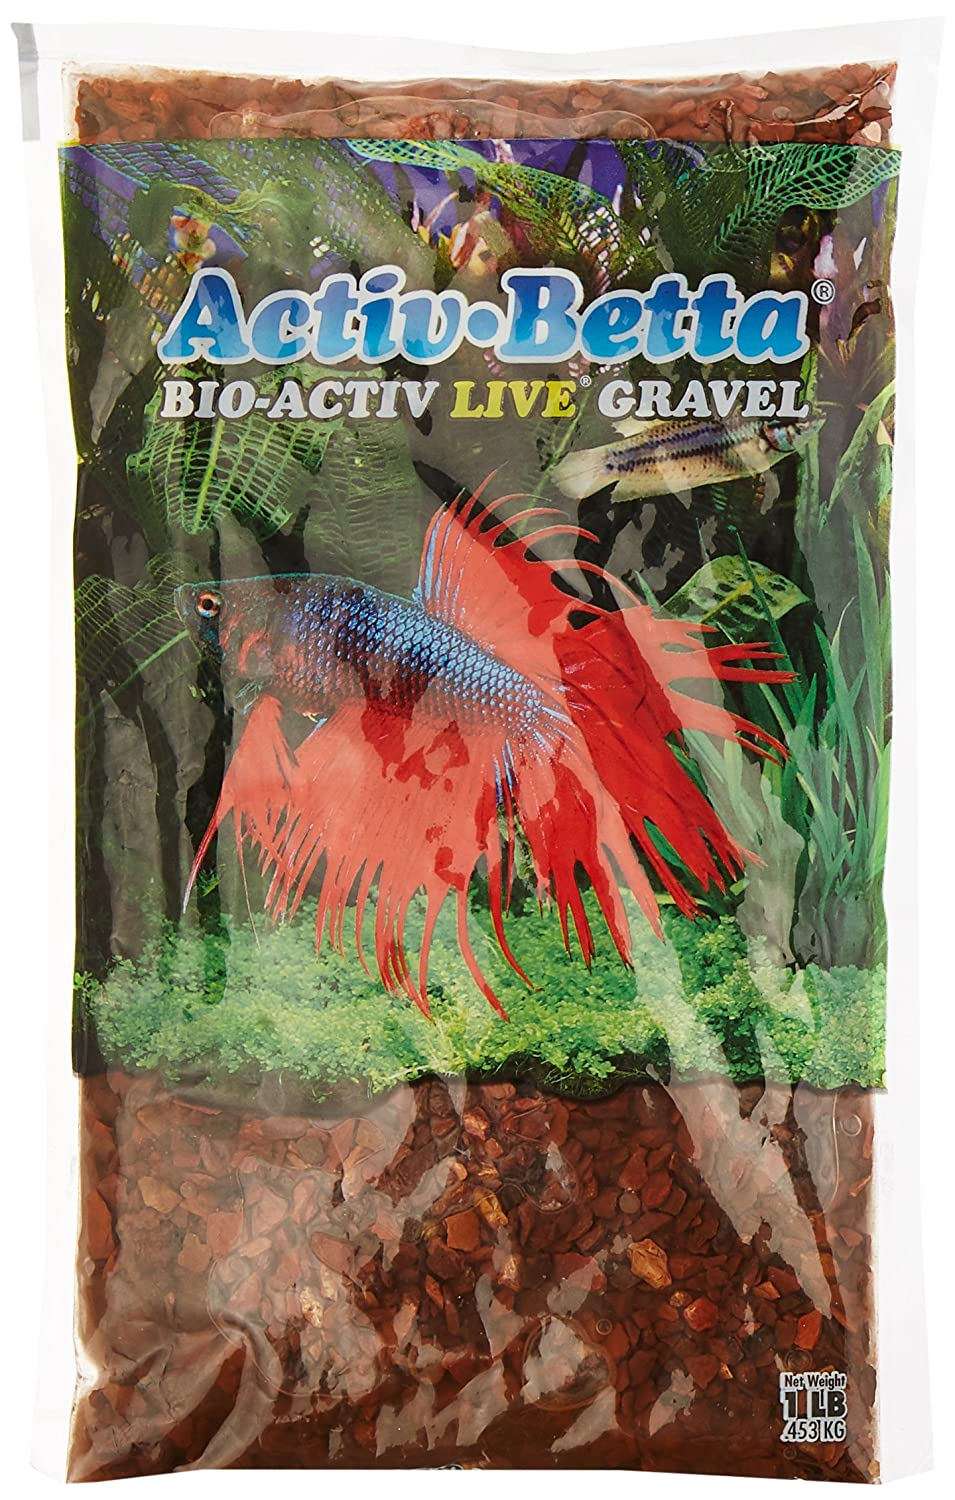 Activ Betta Aquarium Sand, 1-Pound, Red River WORLD WIDE IMPORTS ENT. INC. 10911